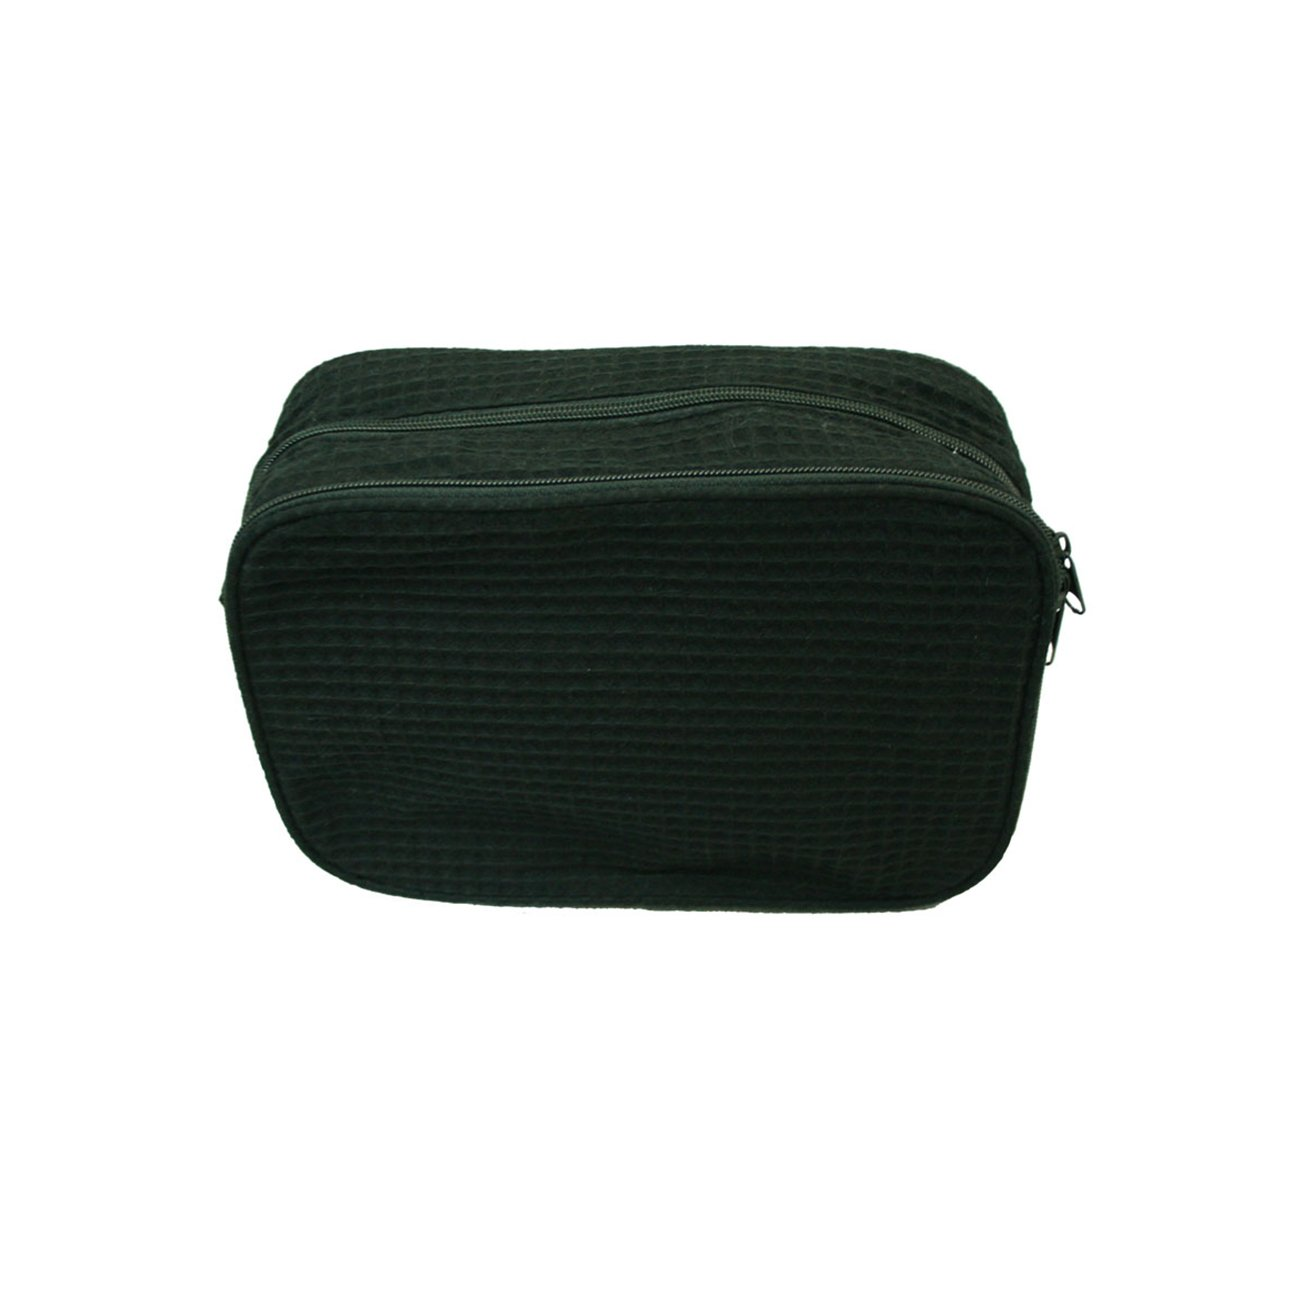 Waffle Cosmetic Makeup Bag One Size, black